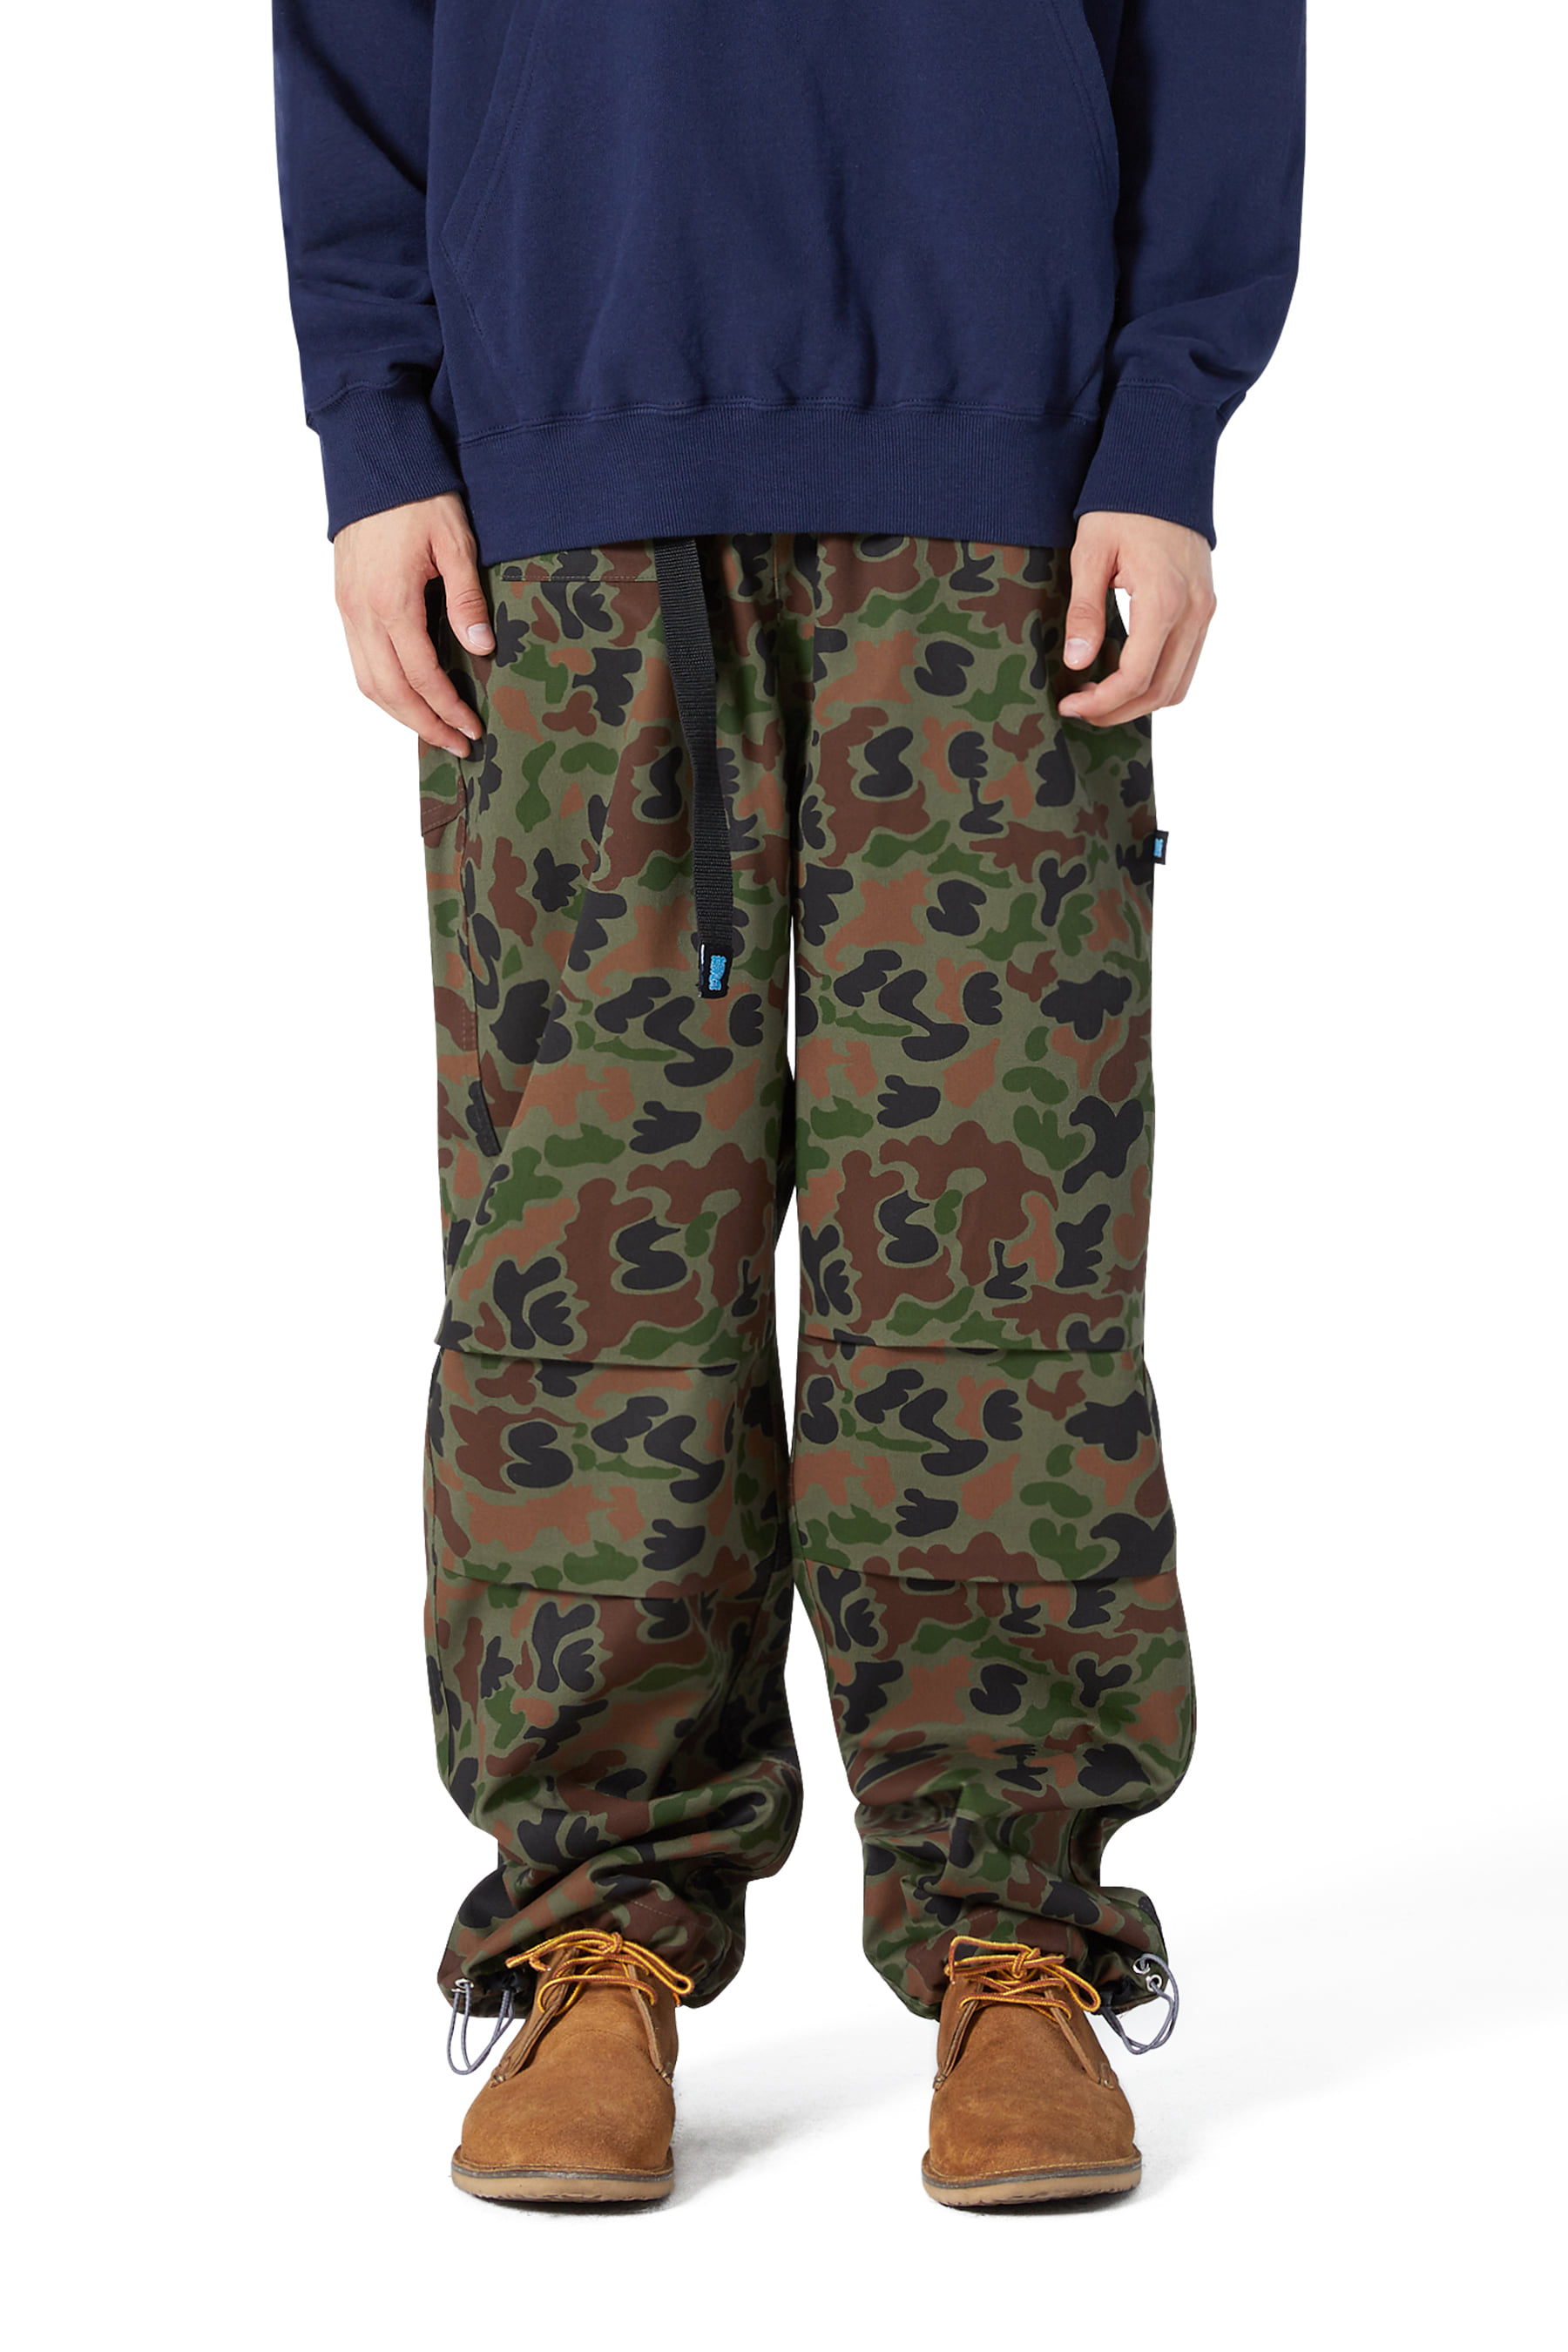 Y.E.S Jungle Pants Jungle